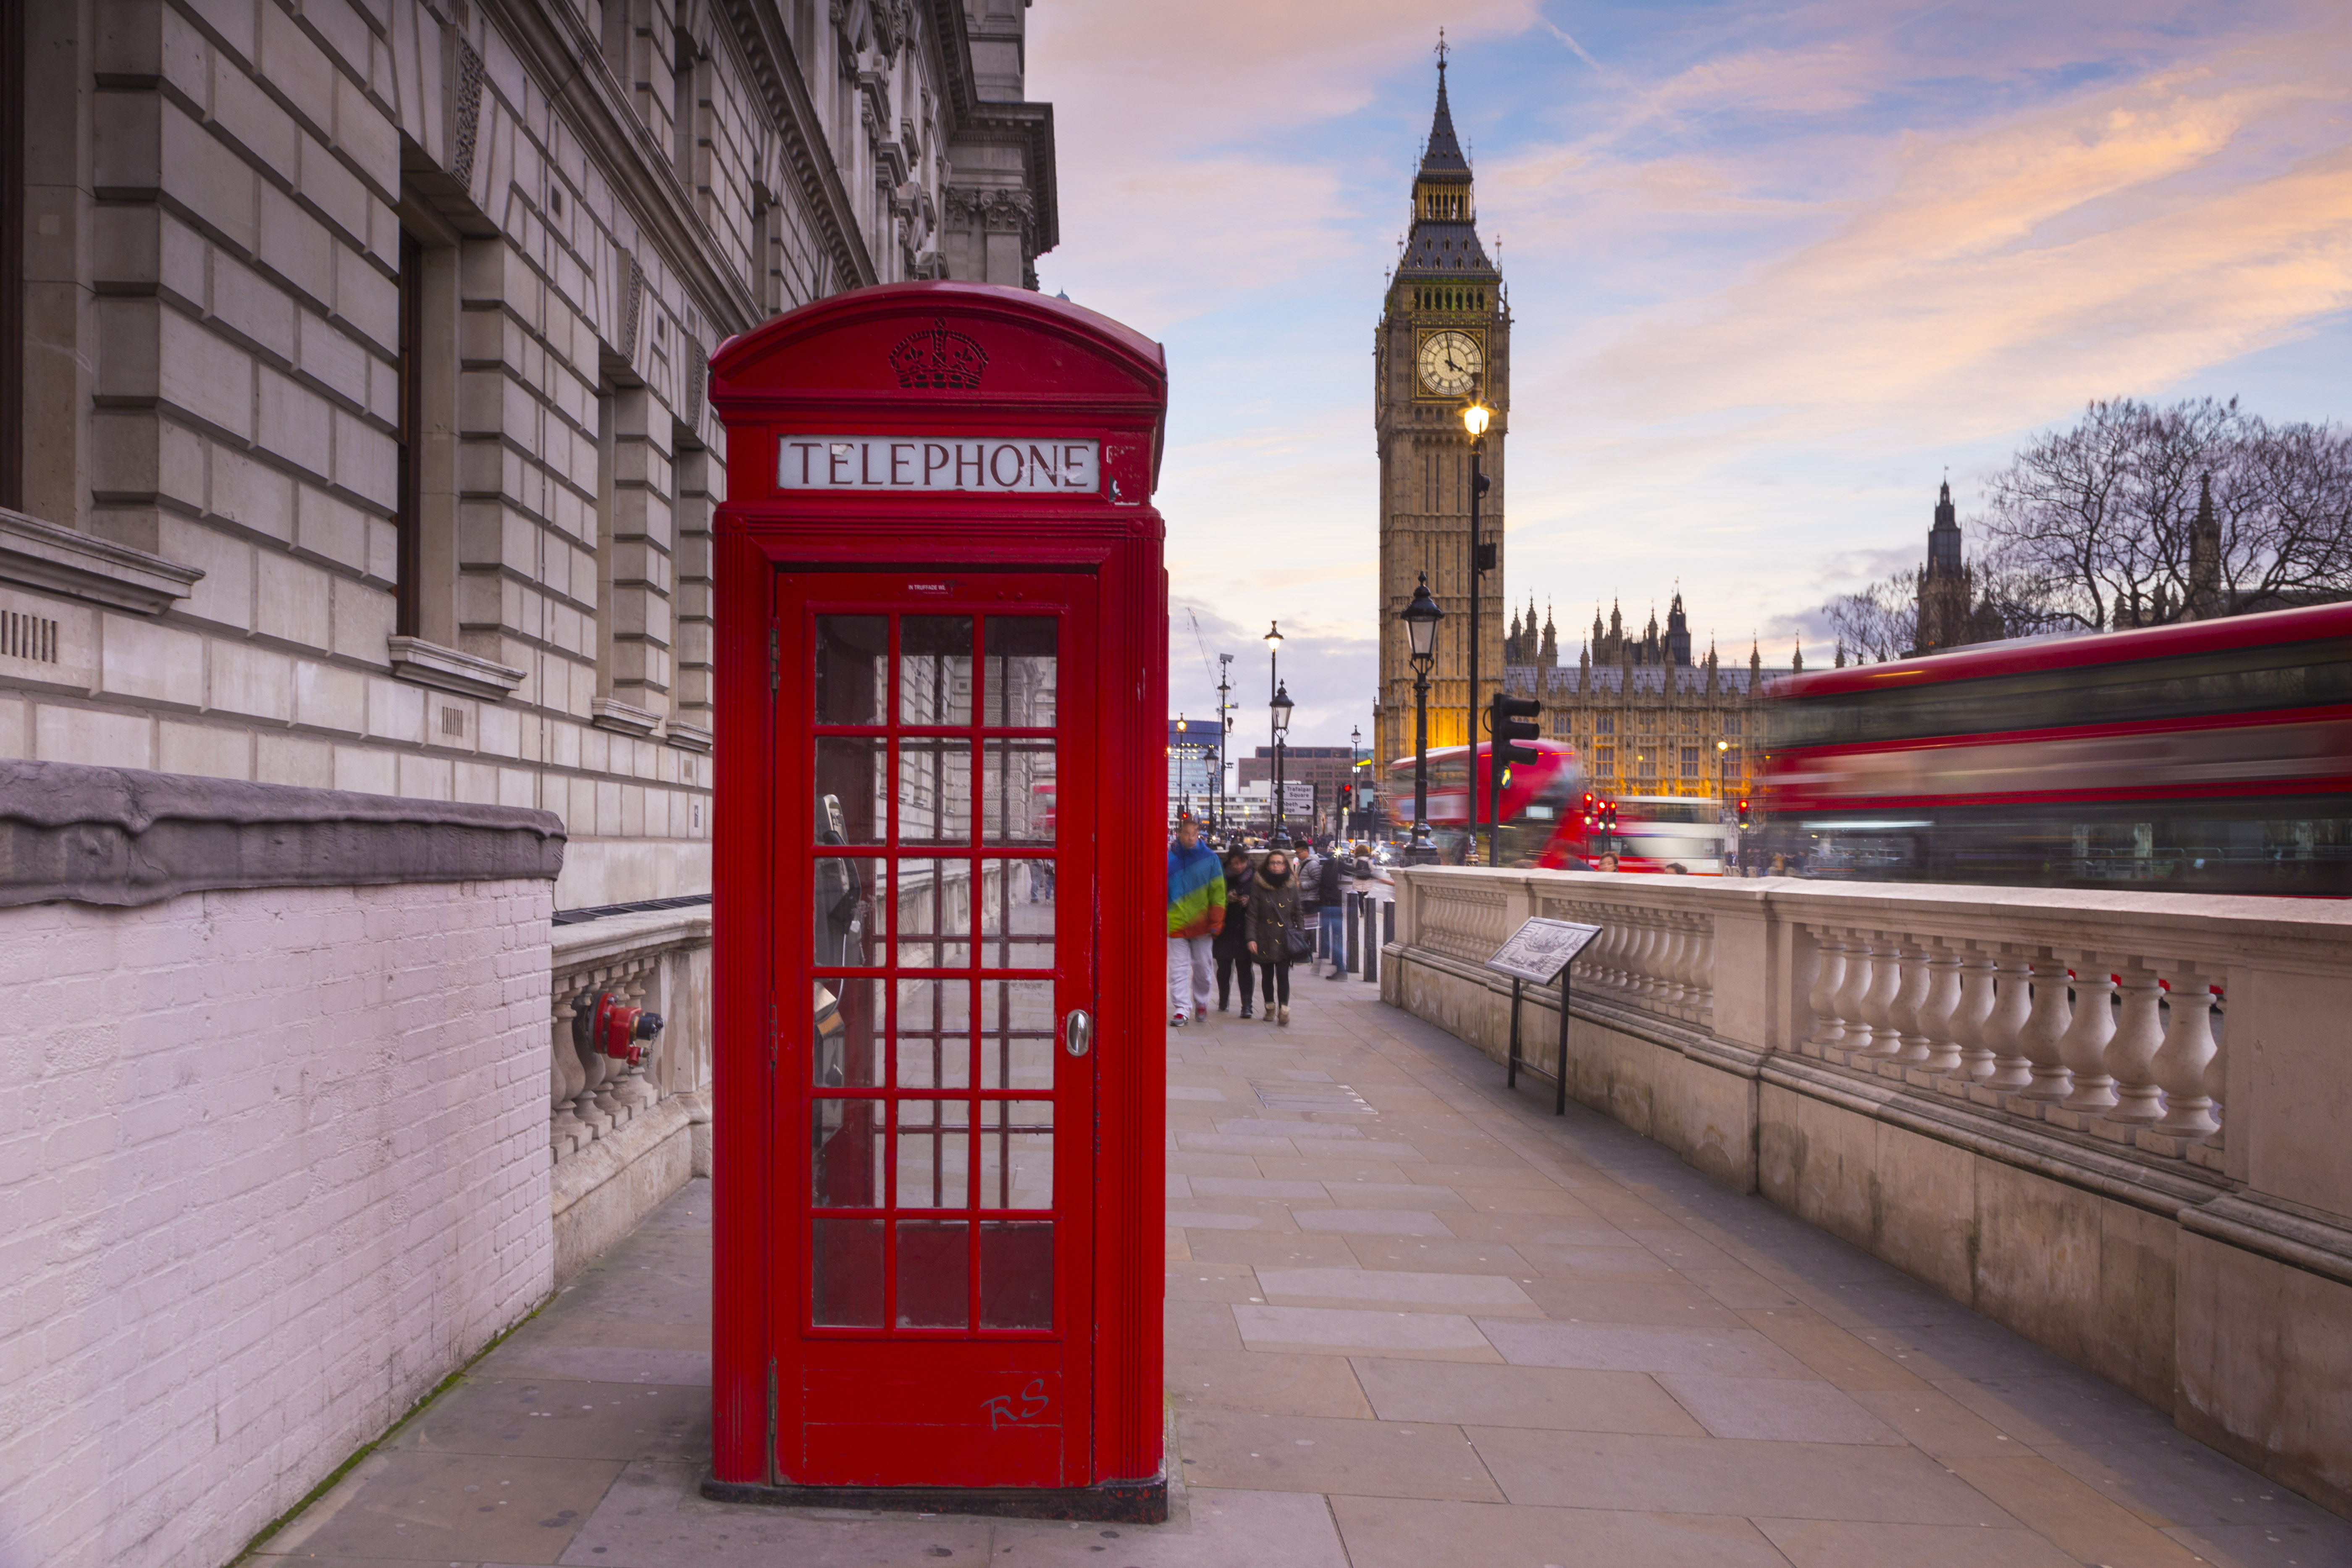 Western Europe, UK, Great Britain, England, London, Red phone box with Big Ben in background